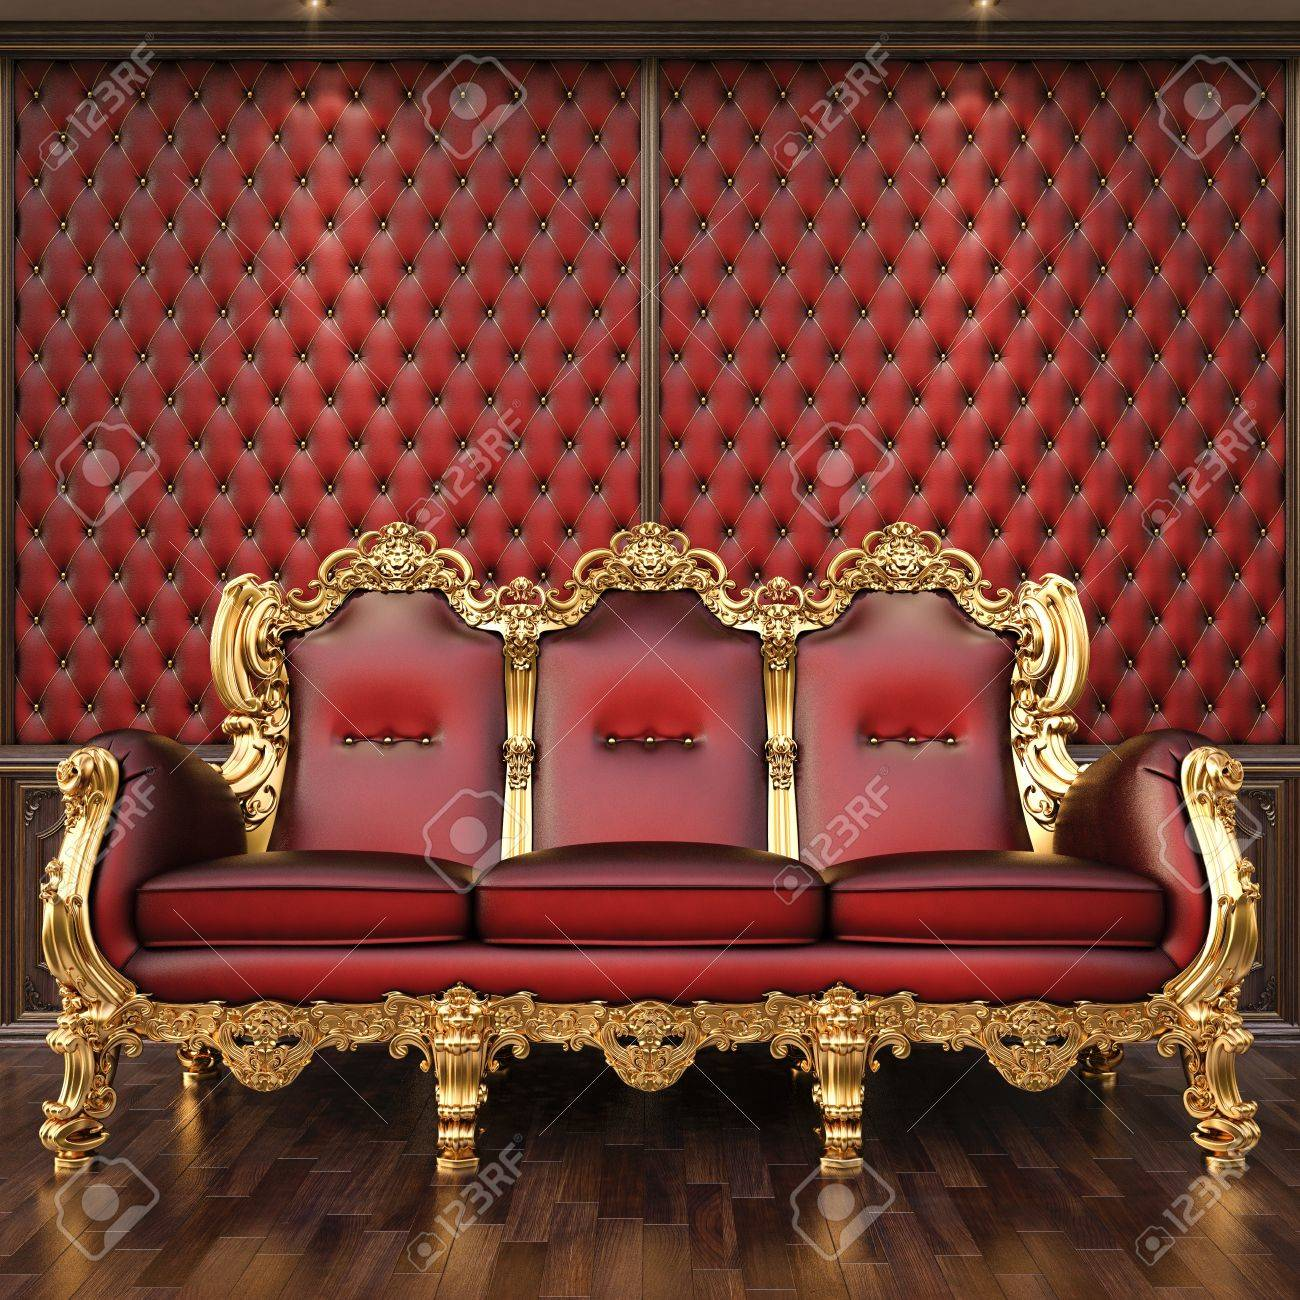 Golden Sofa In The Luxurious Interior. Stock Photo   12769760